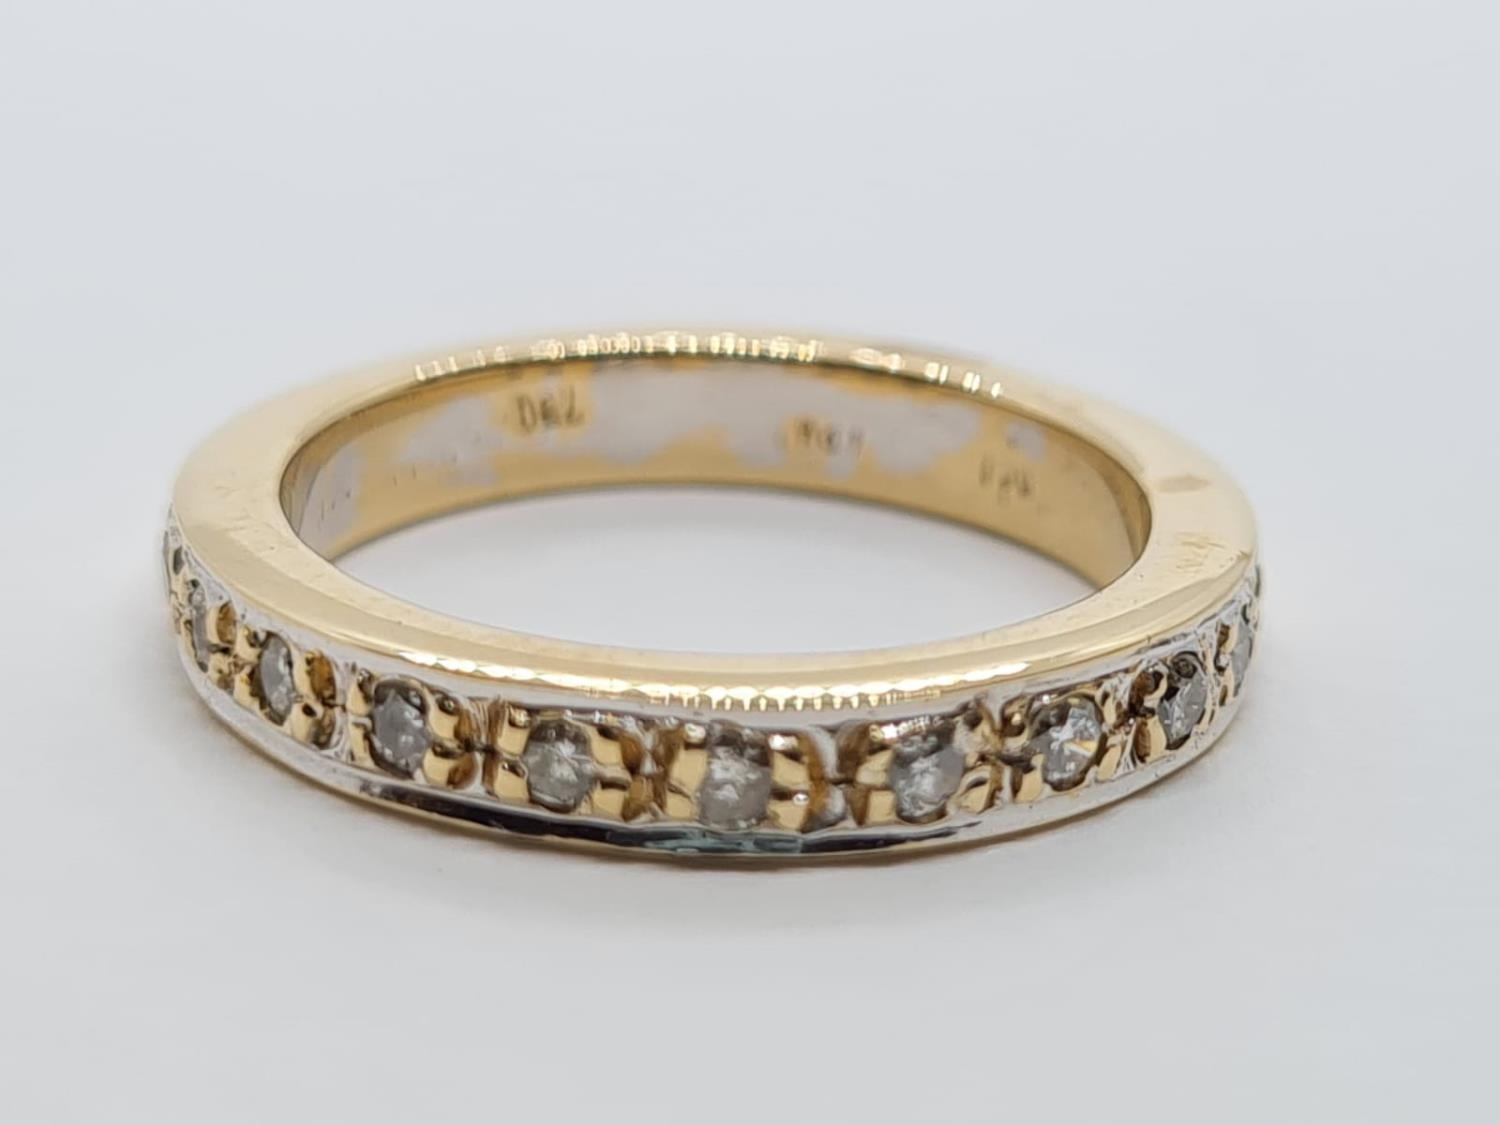 18ct Gold and Diamond Eternity RING. 5.2g Size K/L